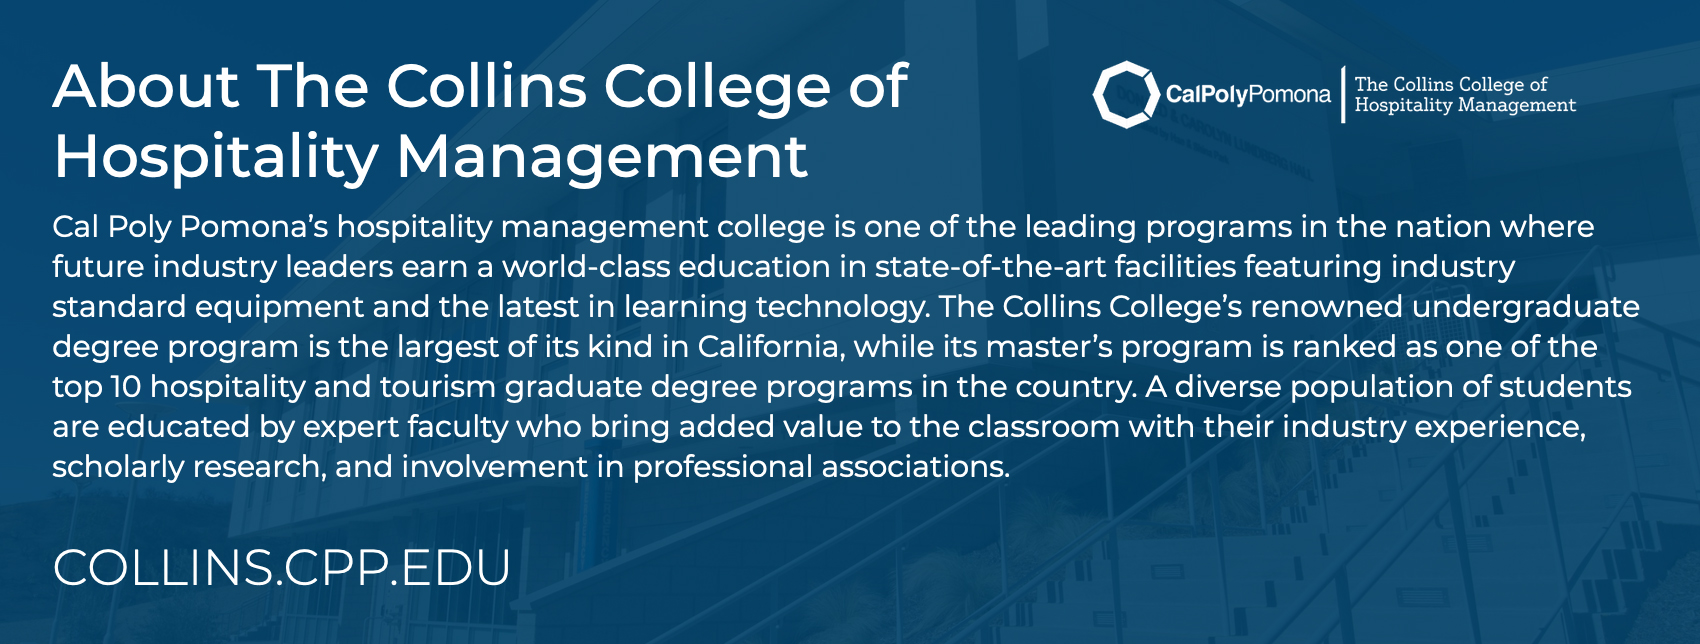 About The Collins College of Hospitality Management